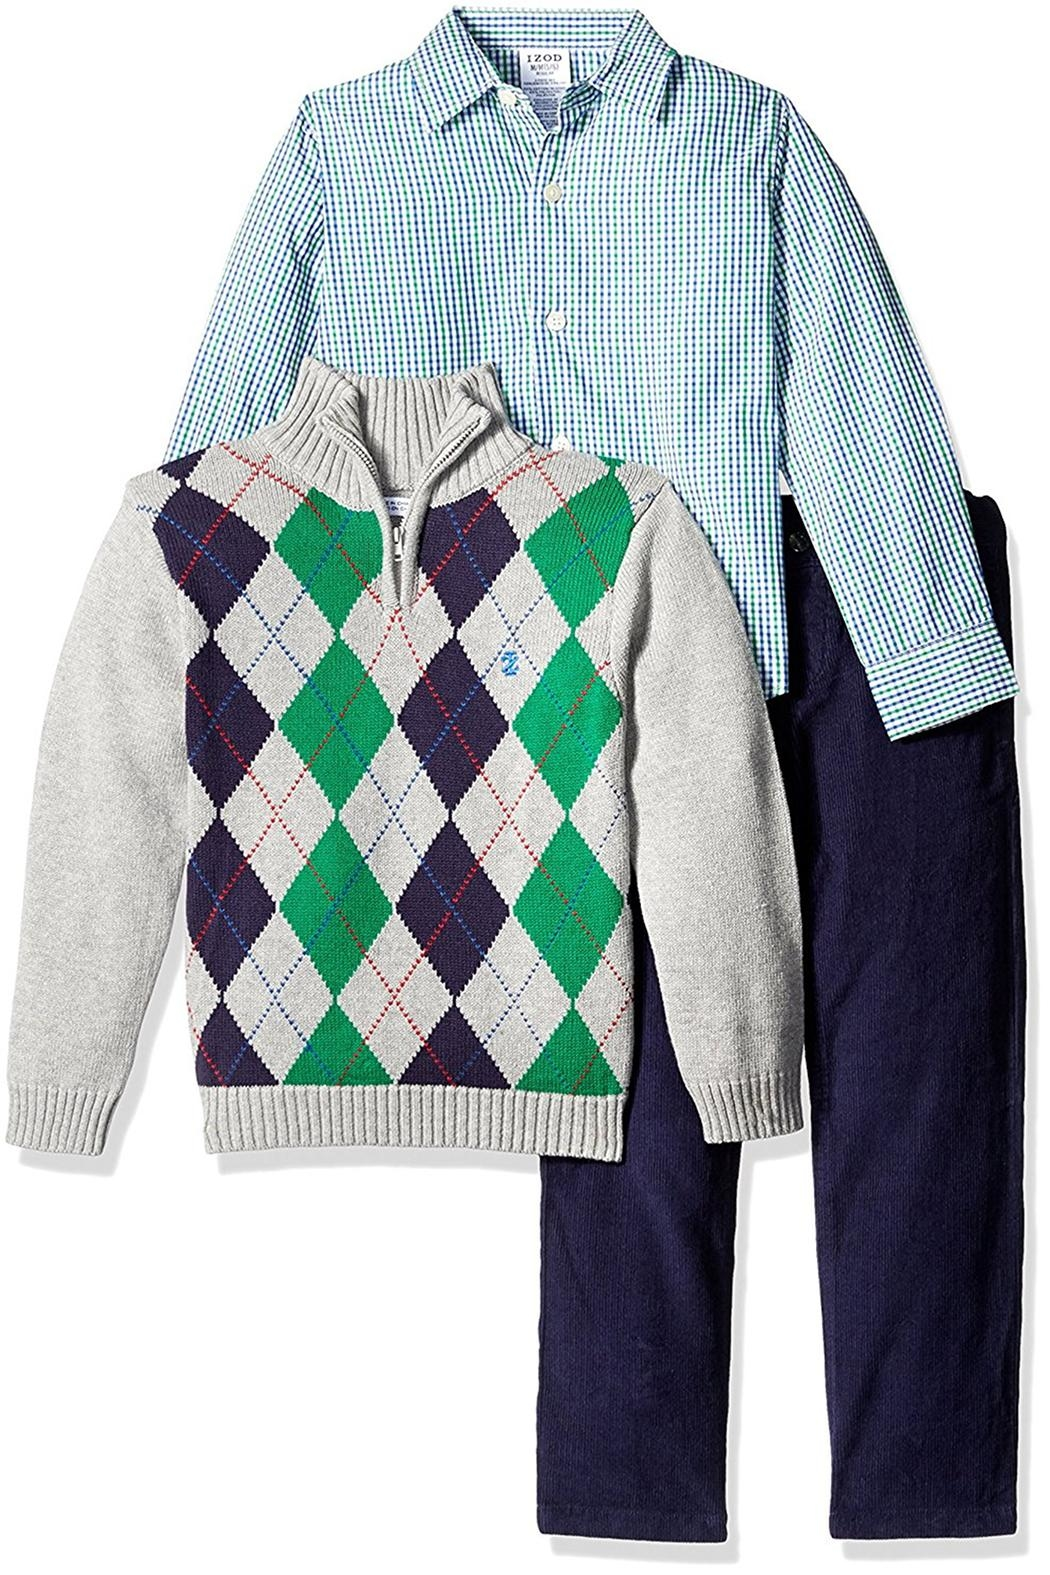 8eb7b318b Izod Argyle Sweater Set from Tennessee by XpressKidz — Shoptiques